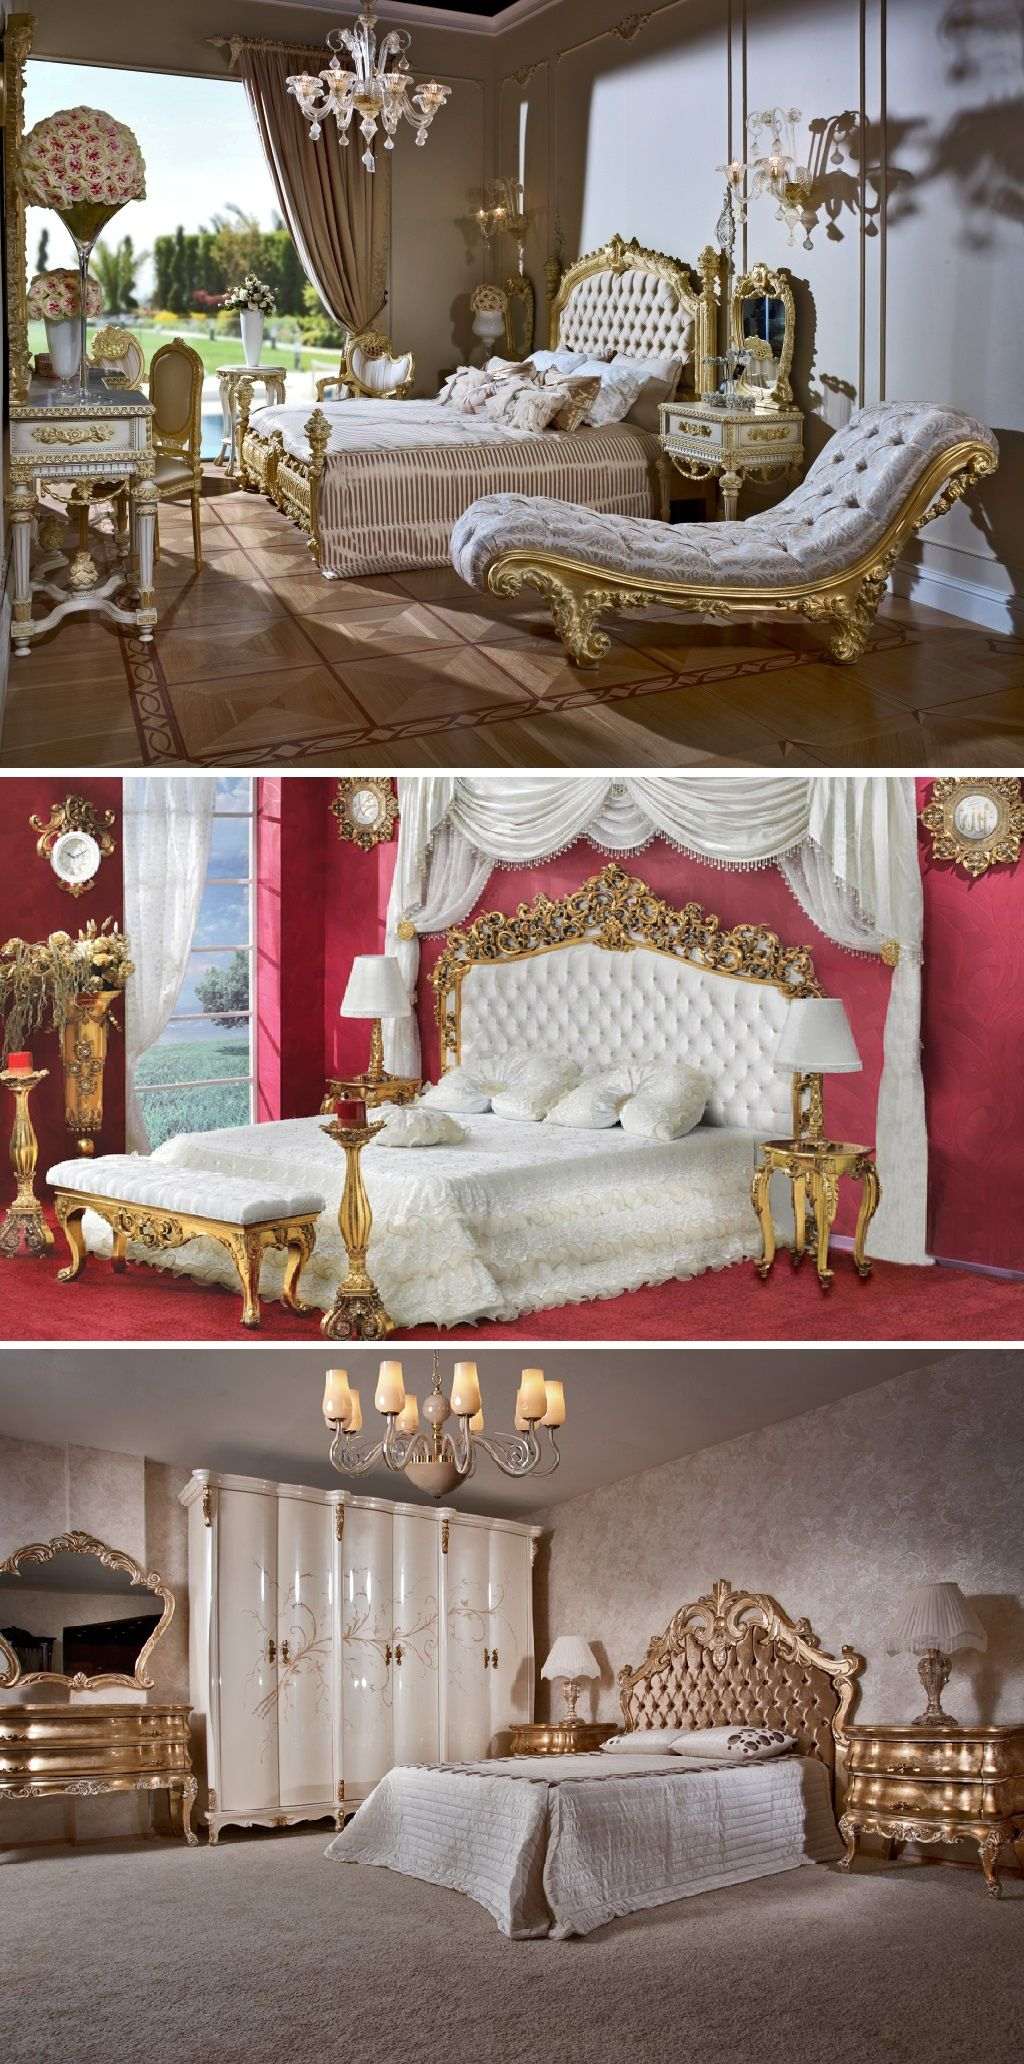 Classic Style Bedroom Sets is part of bedroom Classic Style - Nowadays, one of the most popular furniture styles is the classic style  Classic style bedroom set models are offered with creative details and they are all chic and worth seeing